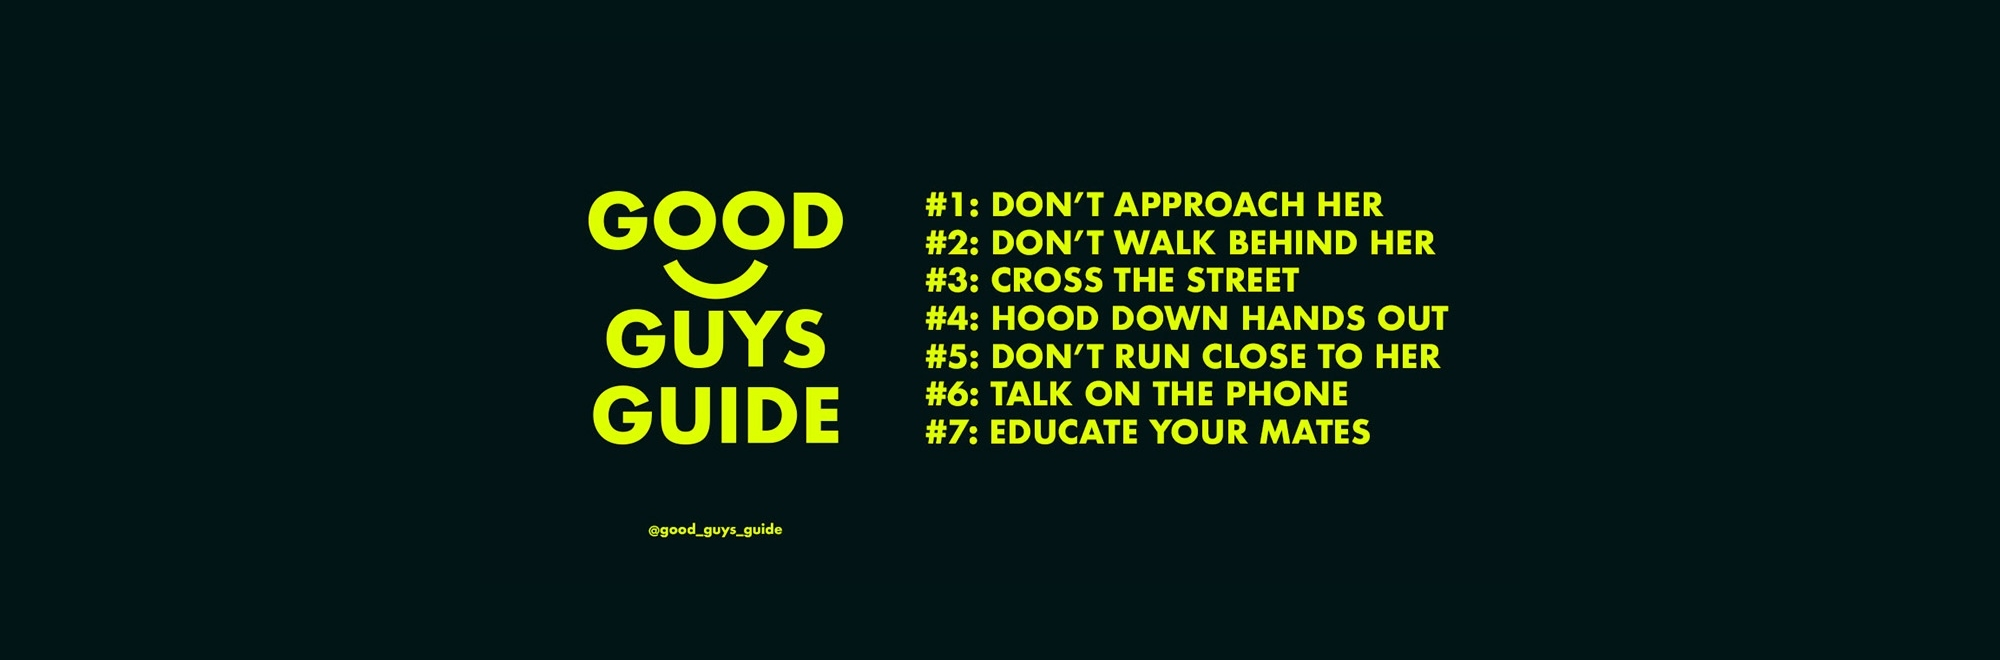 The Good Guys Guide offers men seven simple rules to help women feel safer on the streets